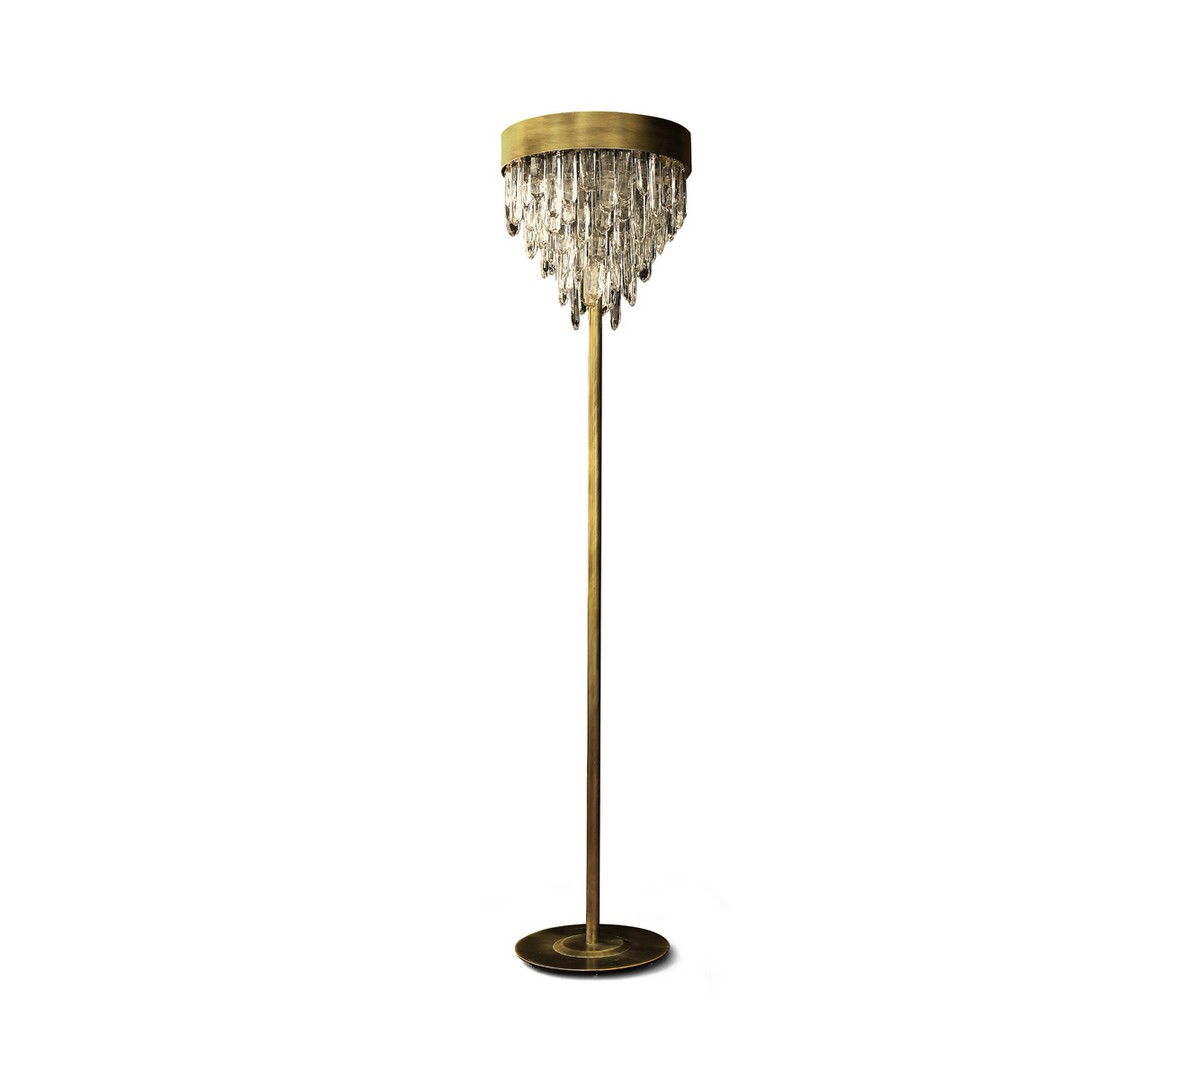 Exclusive Lighting Designs You Will Love (Part II) exclusive lighting designs Exclusive Lighting Designs You Will Love (Part II) naicca floor lamp2